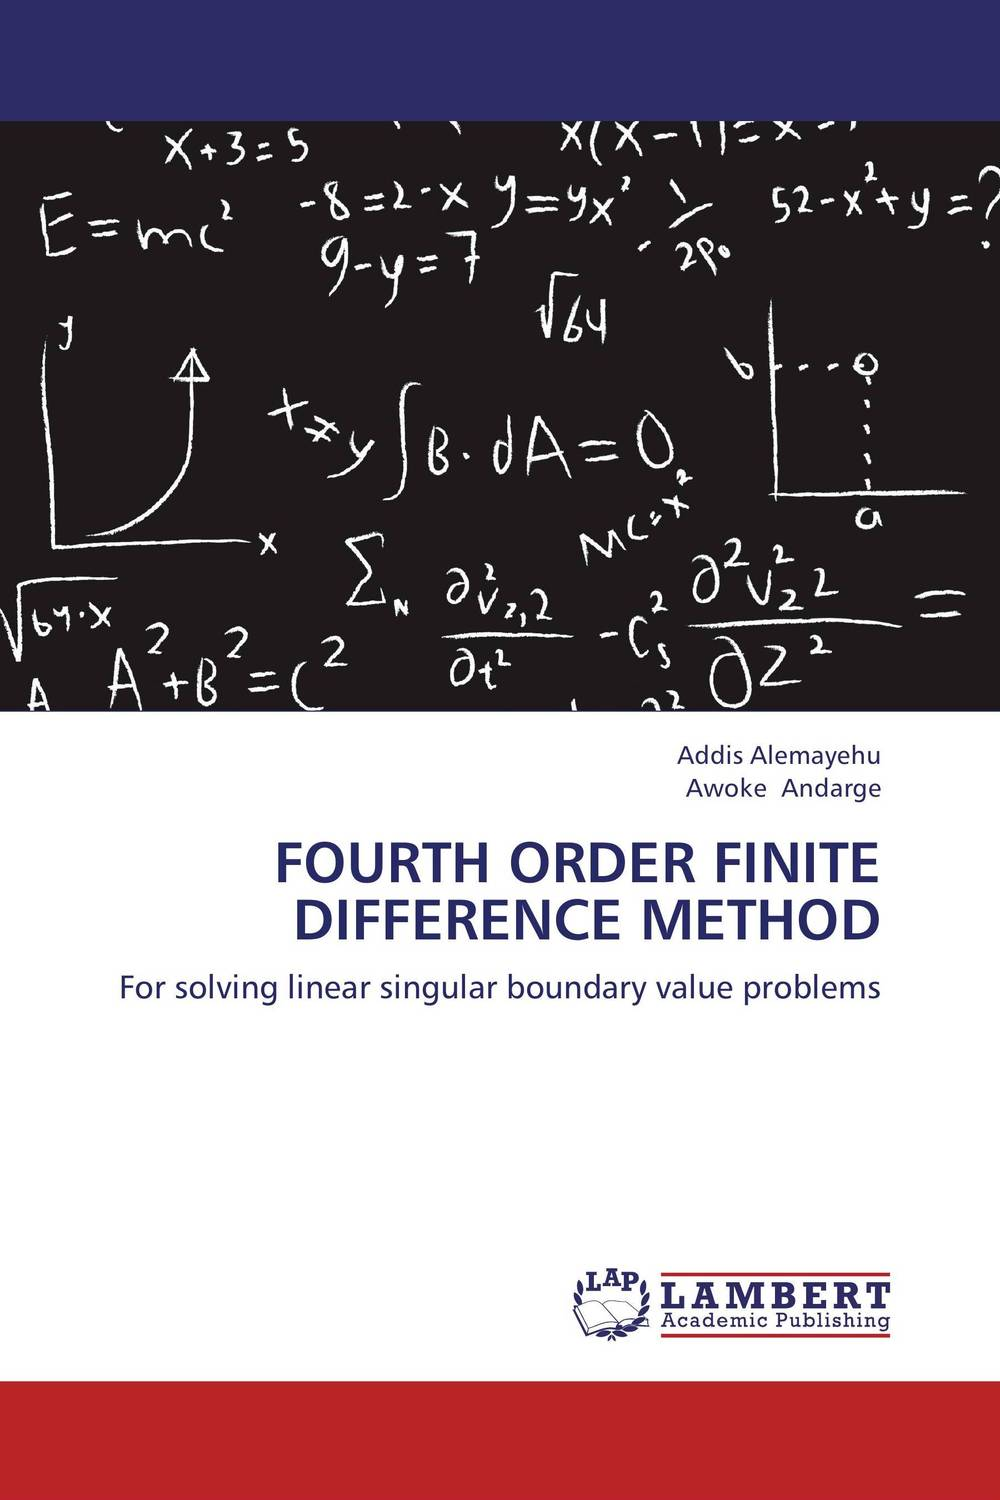 Fourth order finite difference method